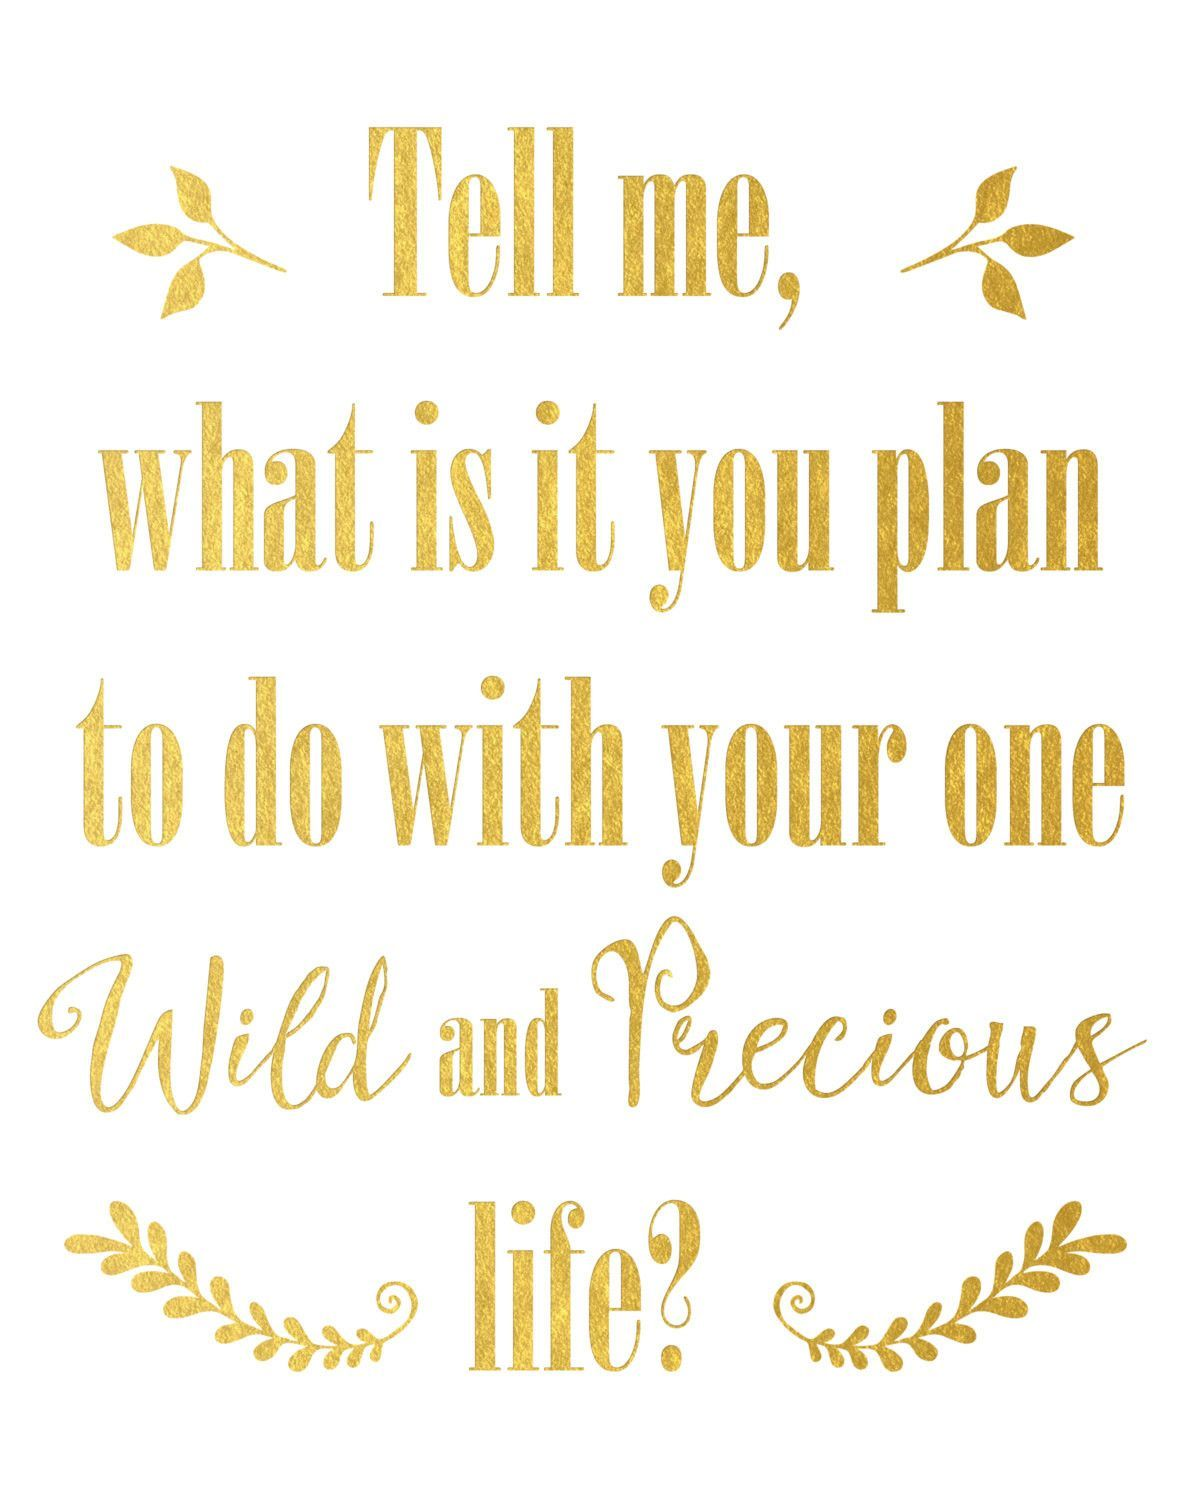 Profound Quotes About Life What Is It You Plan To Do With Your One Wild And Precious Life